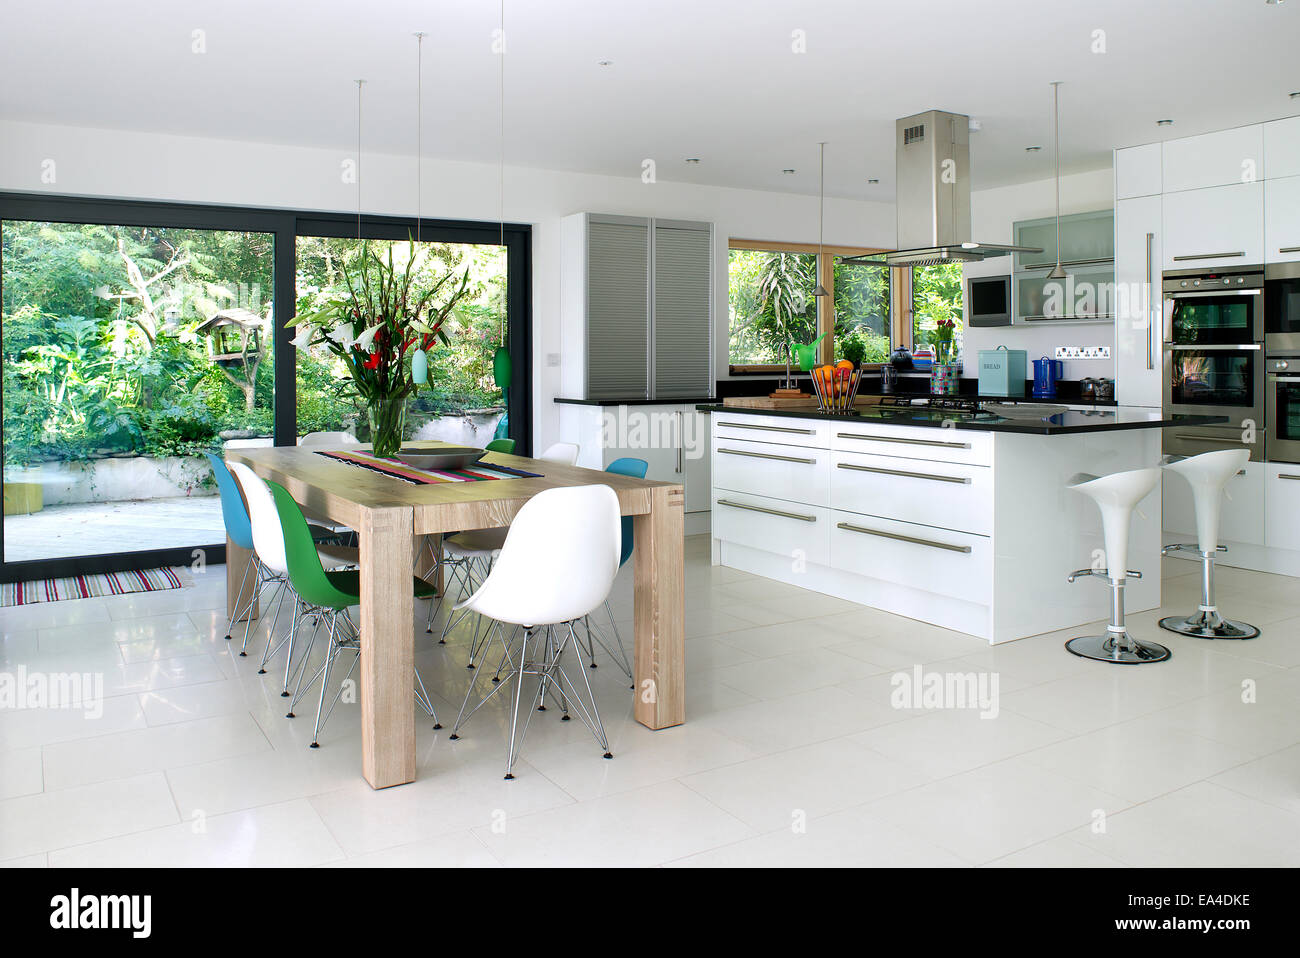 Open Plan Kitchen Ideas Uk open plan kitchen and dining area in residential house, uk stock